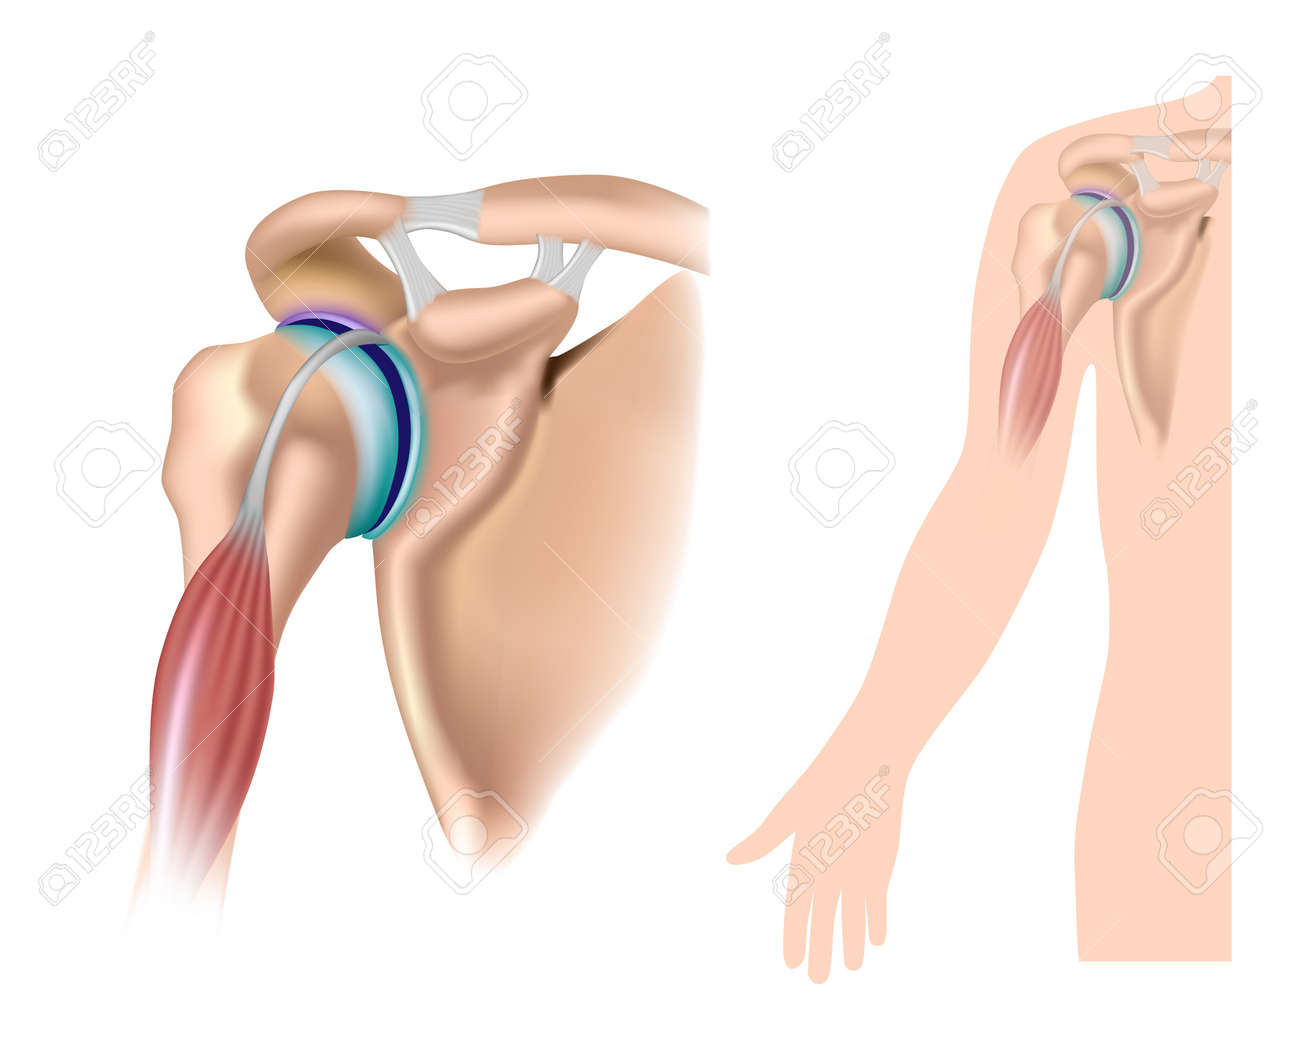 Shoulder Anatomy With Acromioclavicular Joint Royalty Free Cliparts ...